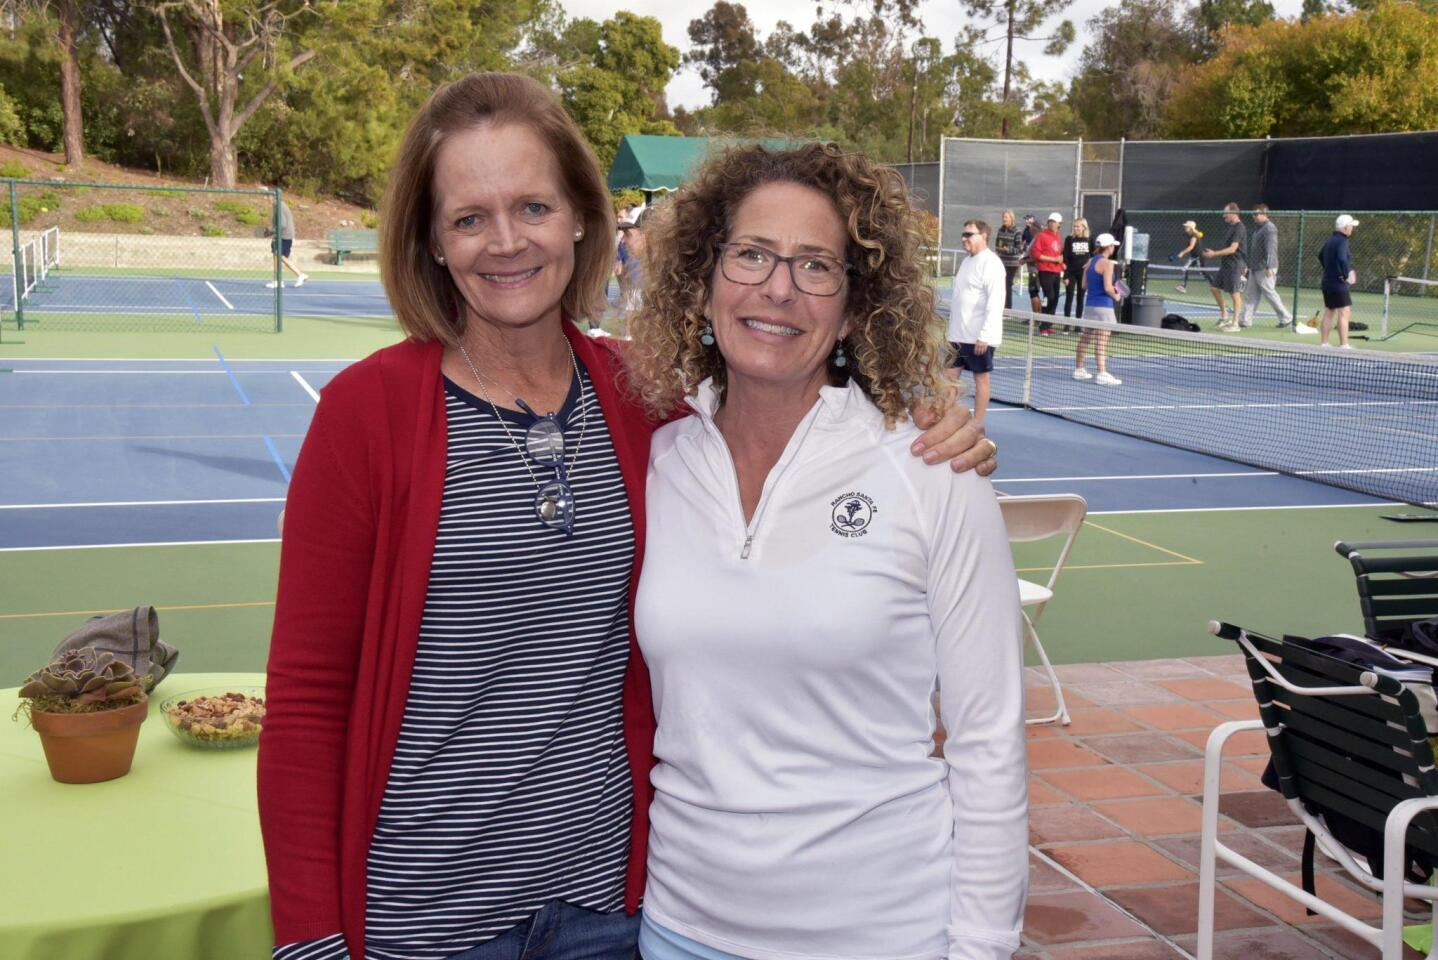 Rancho Santa Fe Tennis Club Pickleball mixer